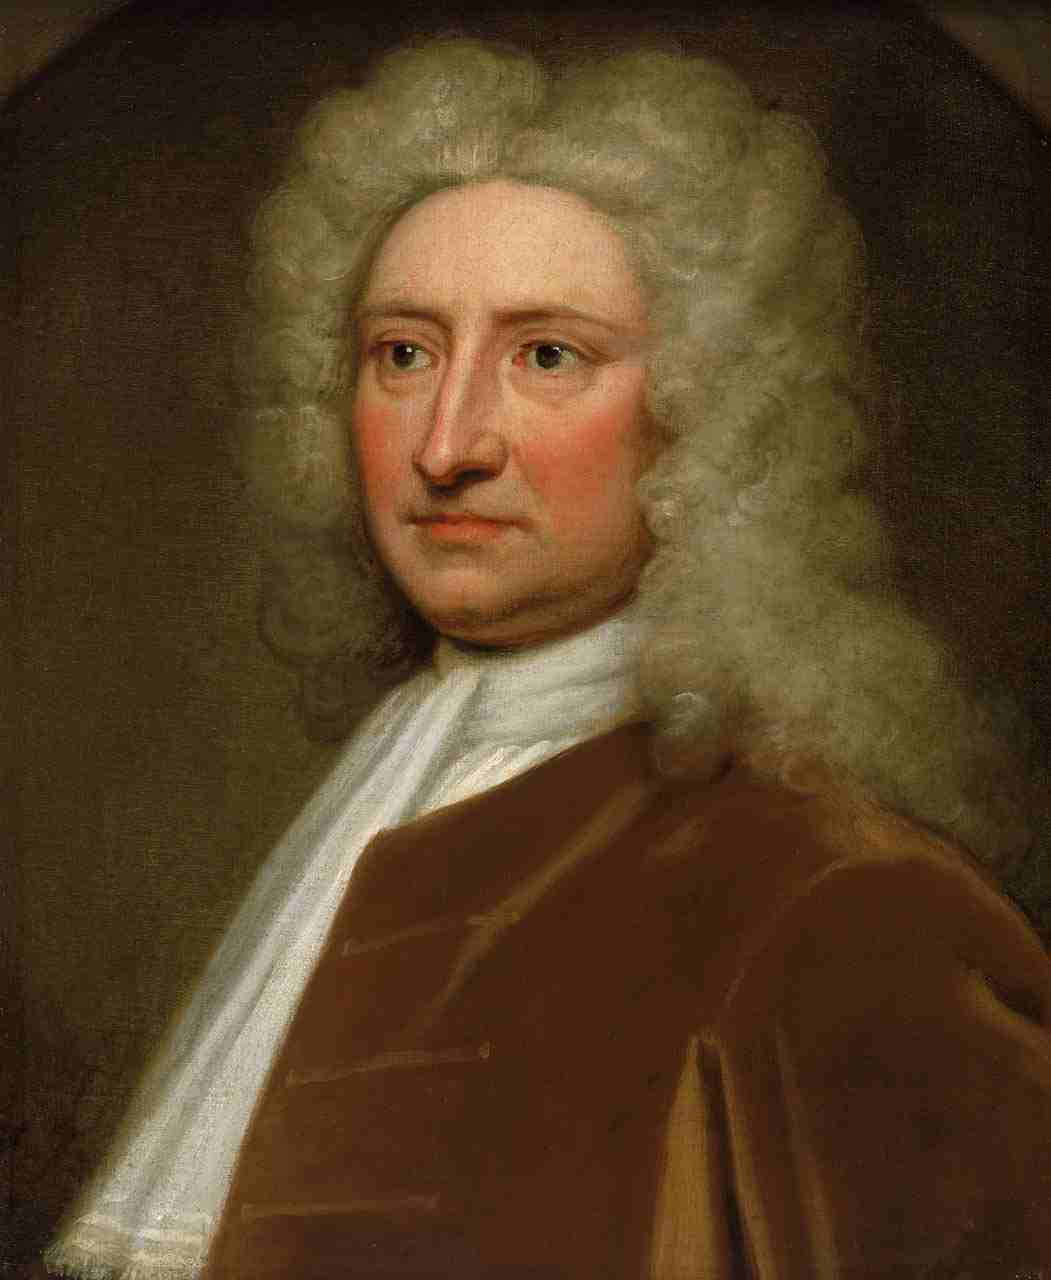 ROBERT HOOKE of Hooke's Law (physics) fame/infamy was a contemporary of Isaac Newton and on occasion either ripped off his ideas or straight up tried to ruin his reputation. An example of bad science.